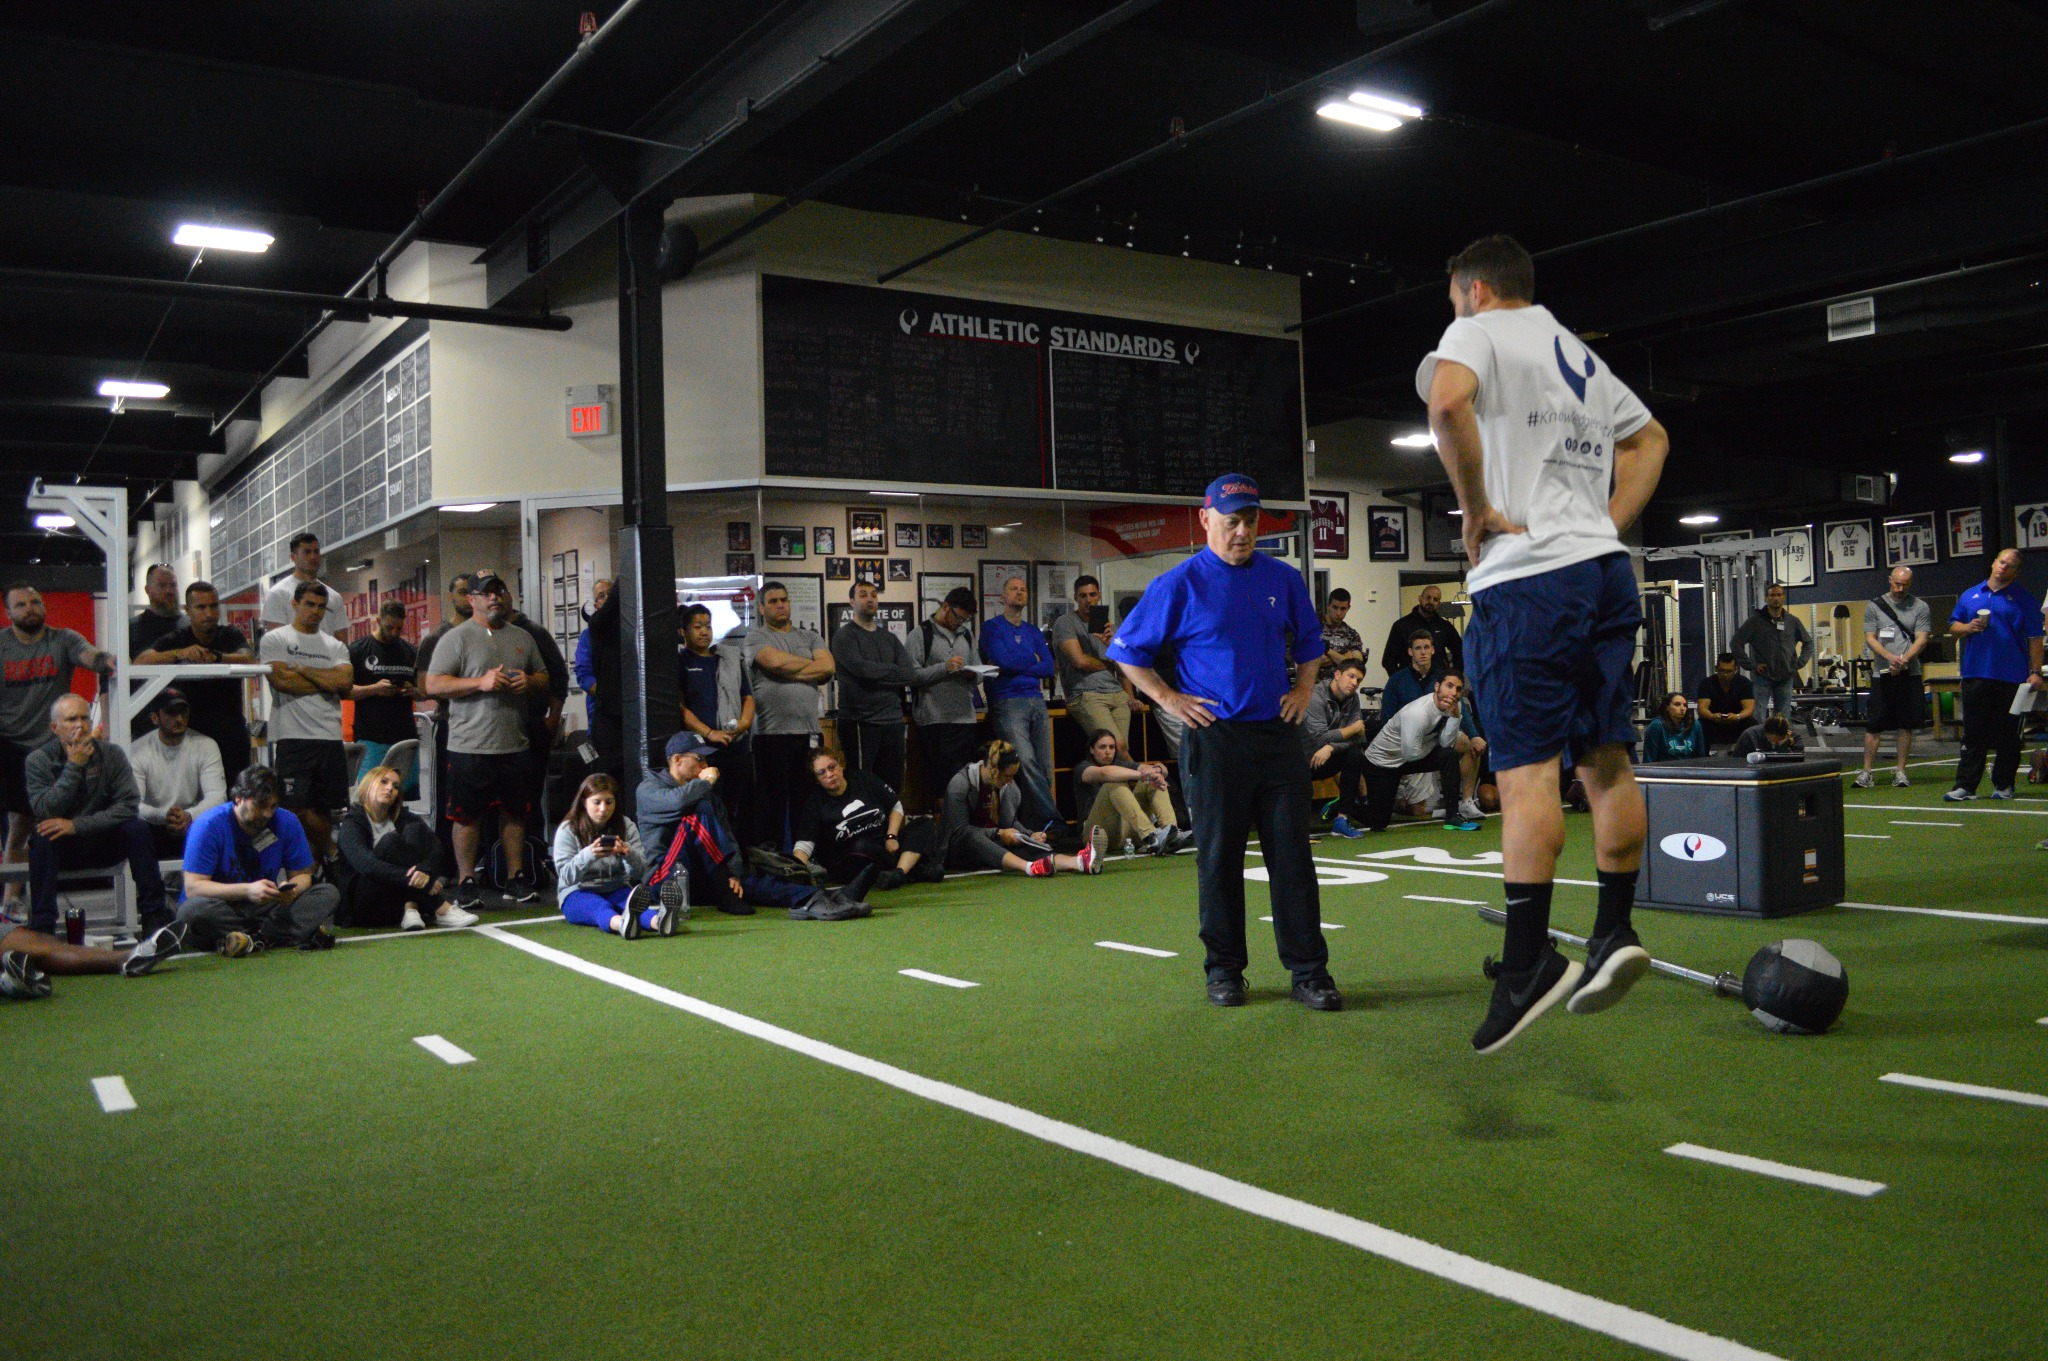 Athletic Performance Summit: The Legends Course - LAB 2 - Principles of Plyometrics